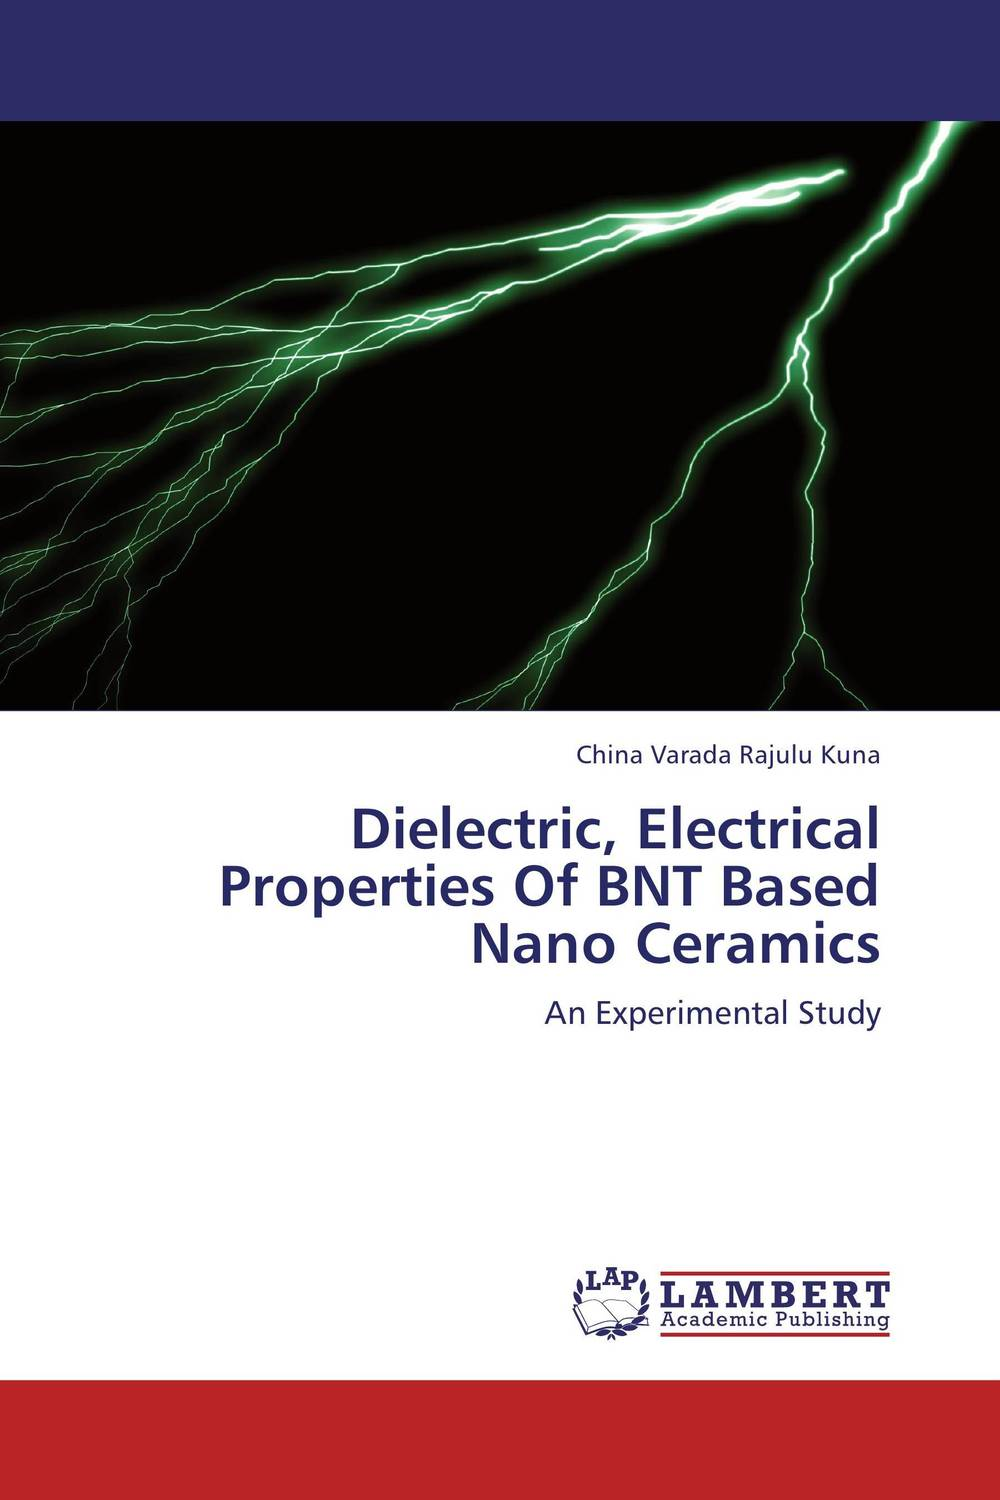 Dielectric, Electrical Properties Of BNT Based Nano Ceramics kenneth rosen d investing in income properties the big six formula for achieving wealth in real estate